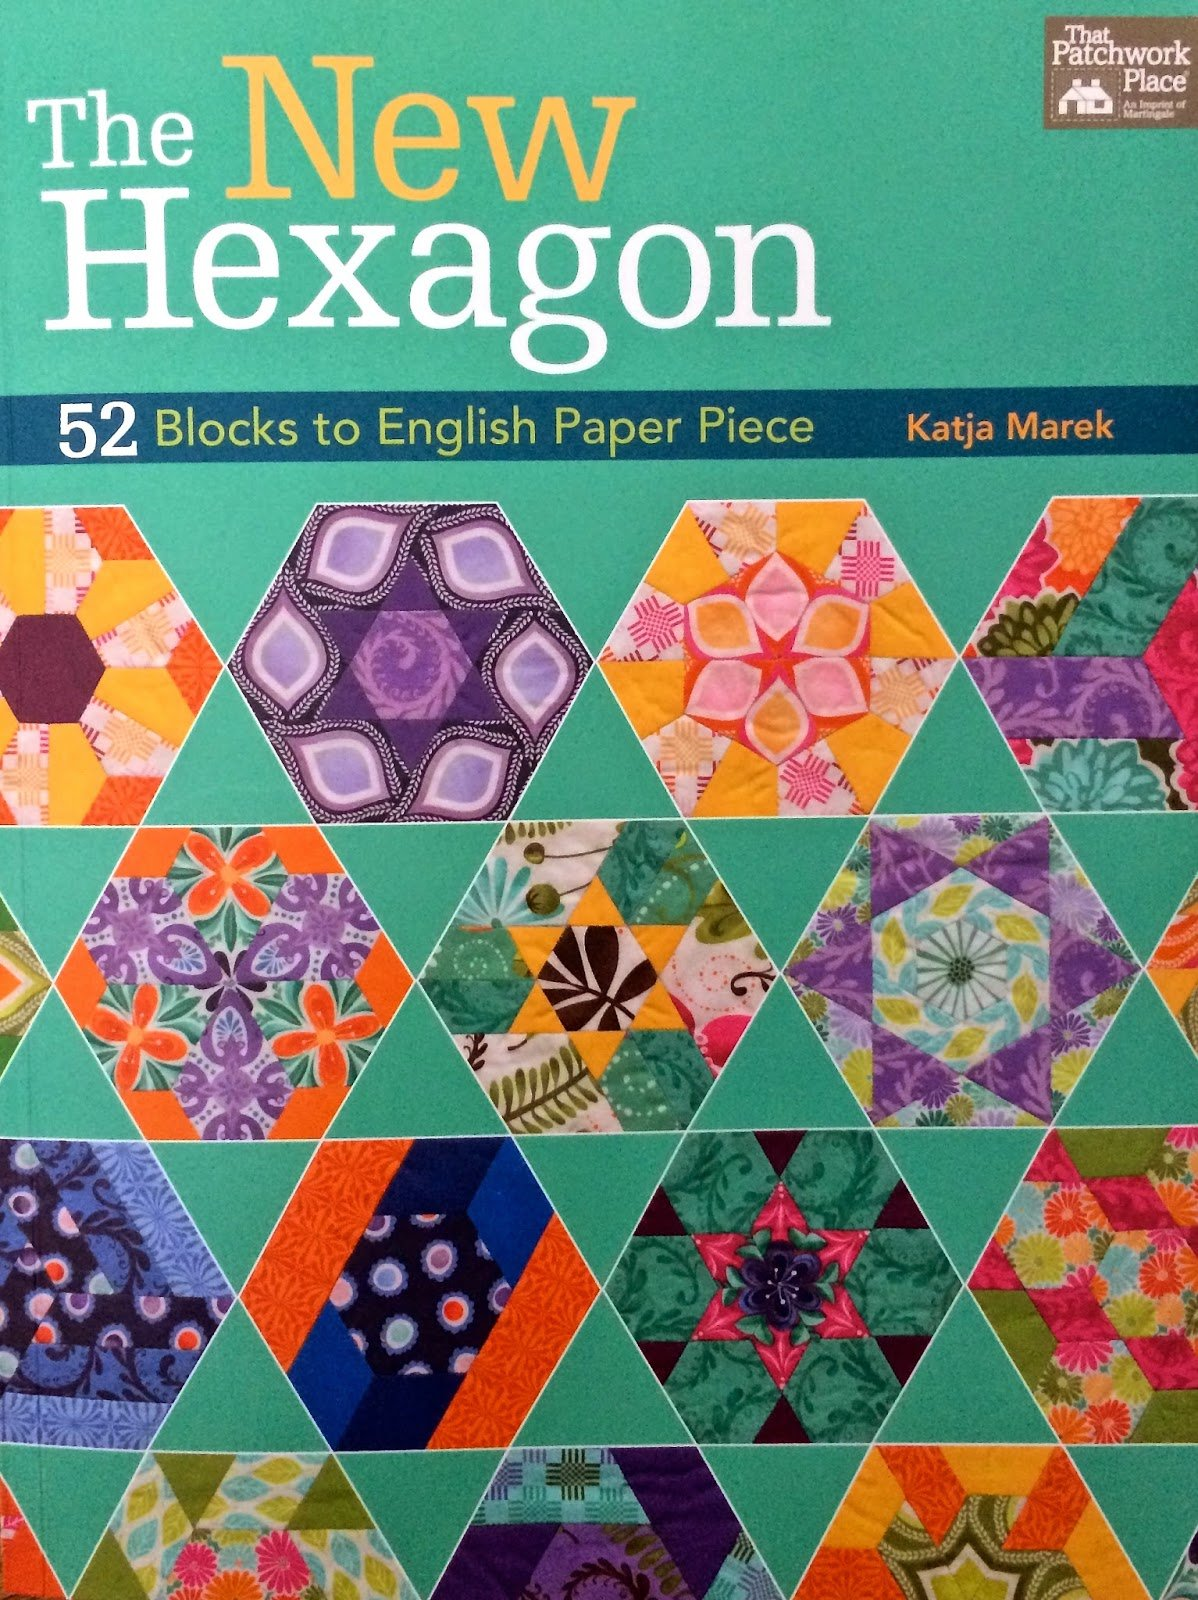 The New Hexagon by Katja Marek, English Paper Piecing Book : B1235